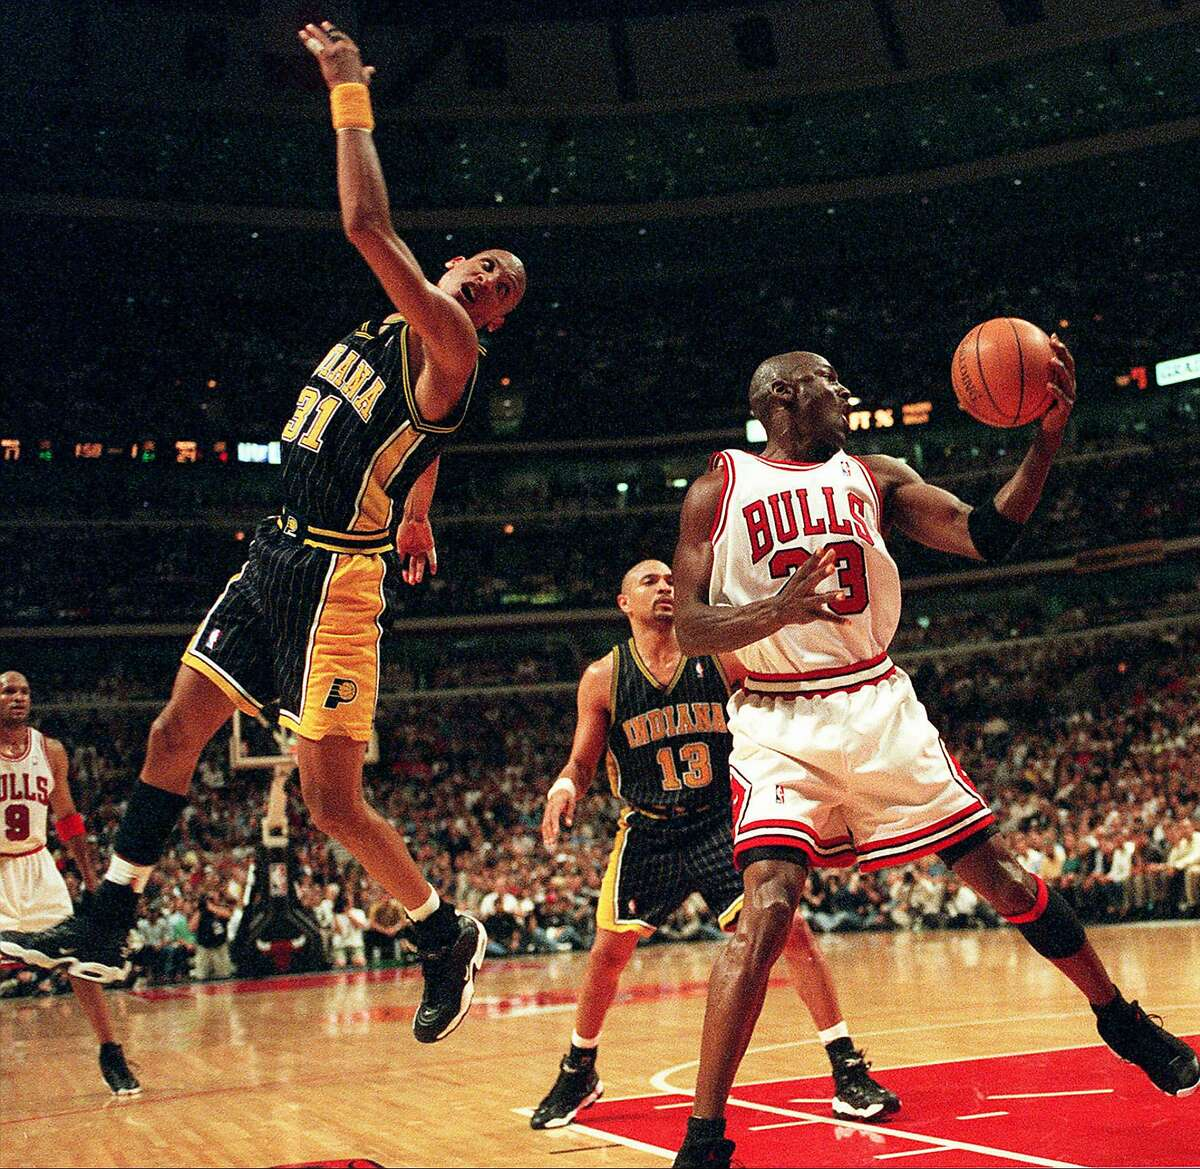 Chicago Bulls' Michael Jordan keeps the ball from Indiana Pacers' Reggie Miller during the first quarter of a playoff game on May 19, 1998 at the United Center in Chicago, Ill. (Charles Cherney/Chicago Tribune/TNS)